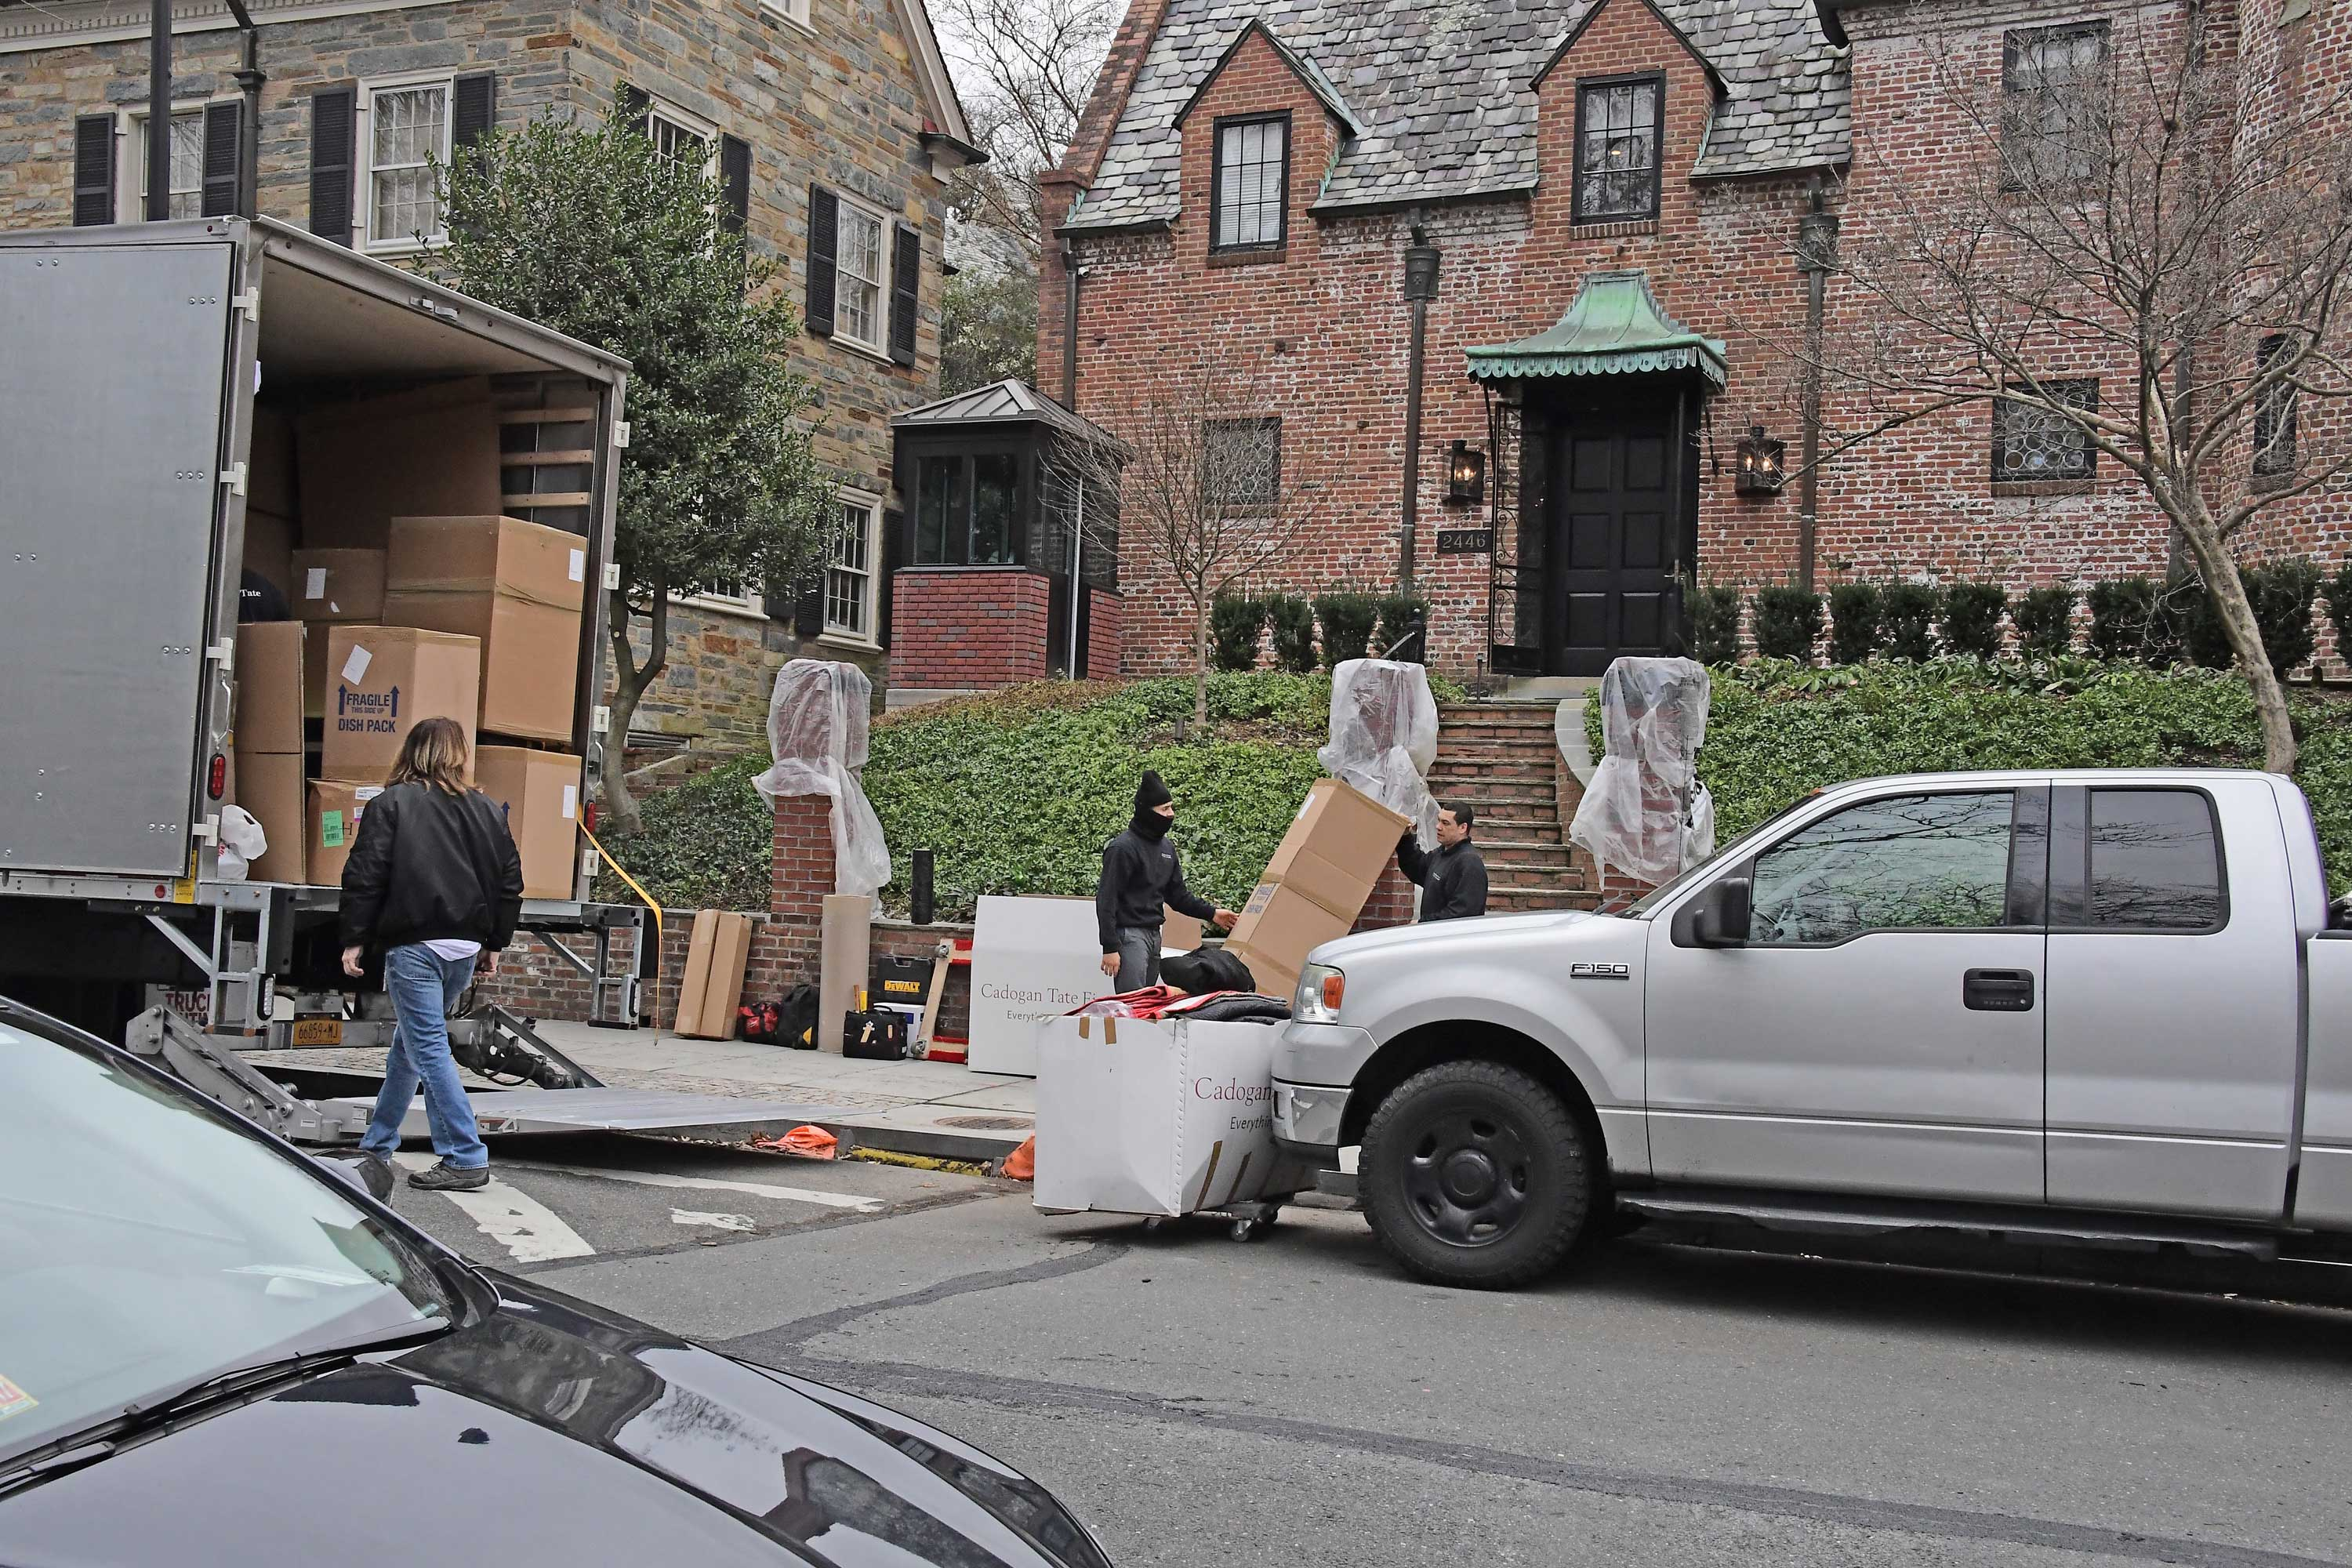 Movers take boxes from a truck to 2446 Belmont Road, NW in Washington, D.C. the home that President Barack Obama and his family will be living after he departs the White House Friday. (Photo: Ron Sachs/CNP/Polaris/Newscom)